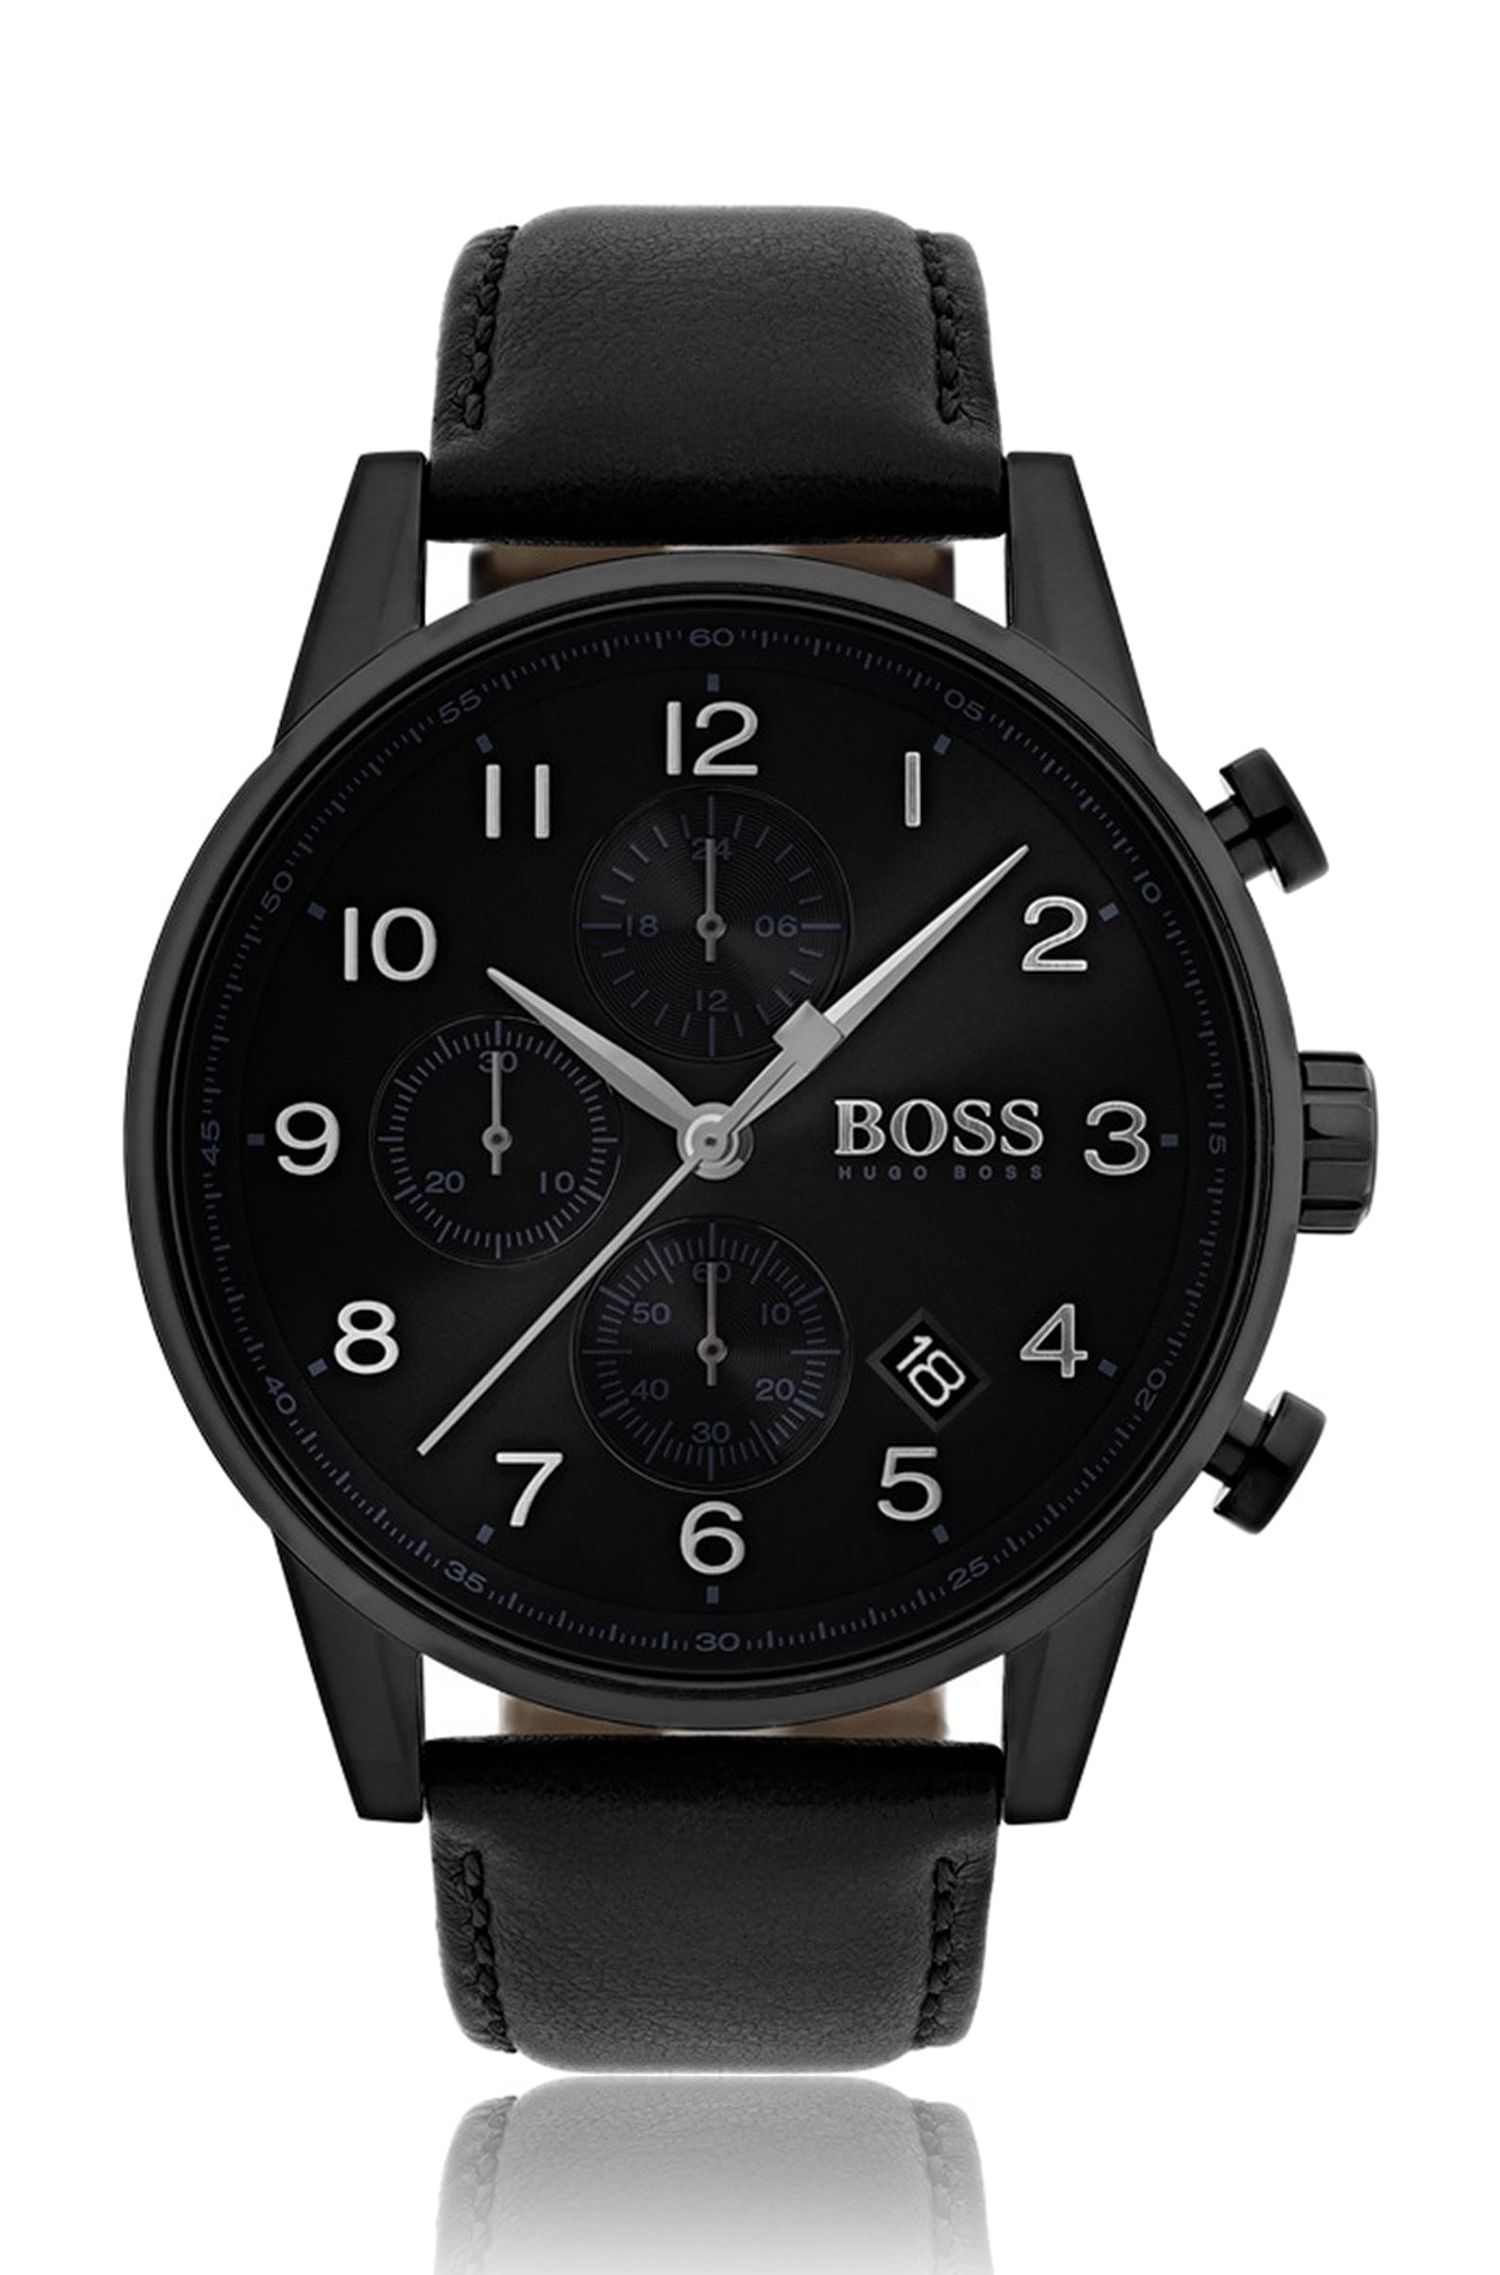 Three-hand watch with sunray brushed dial and leather strap